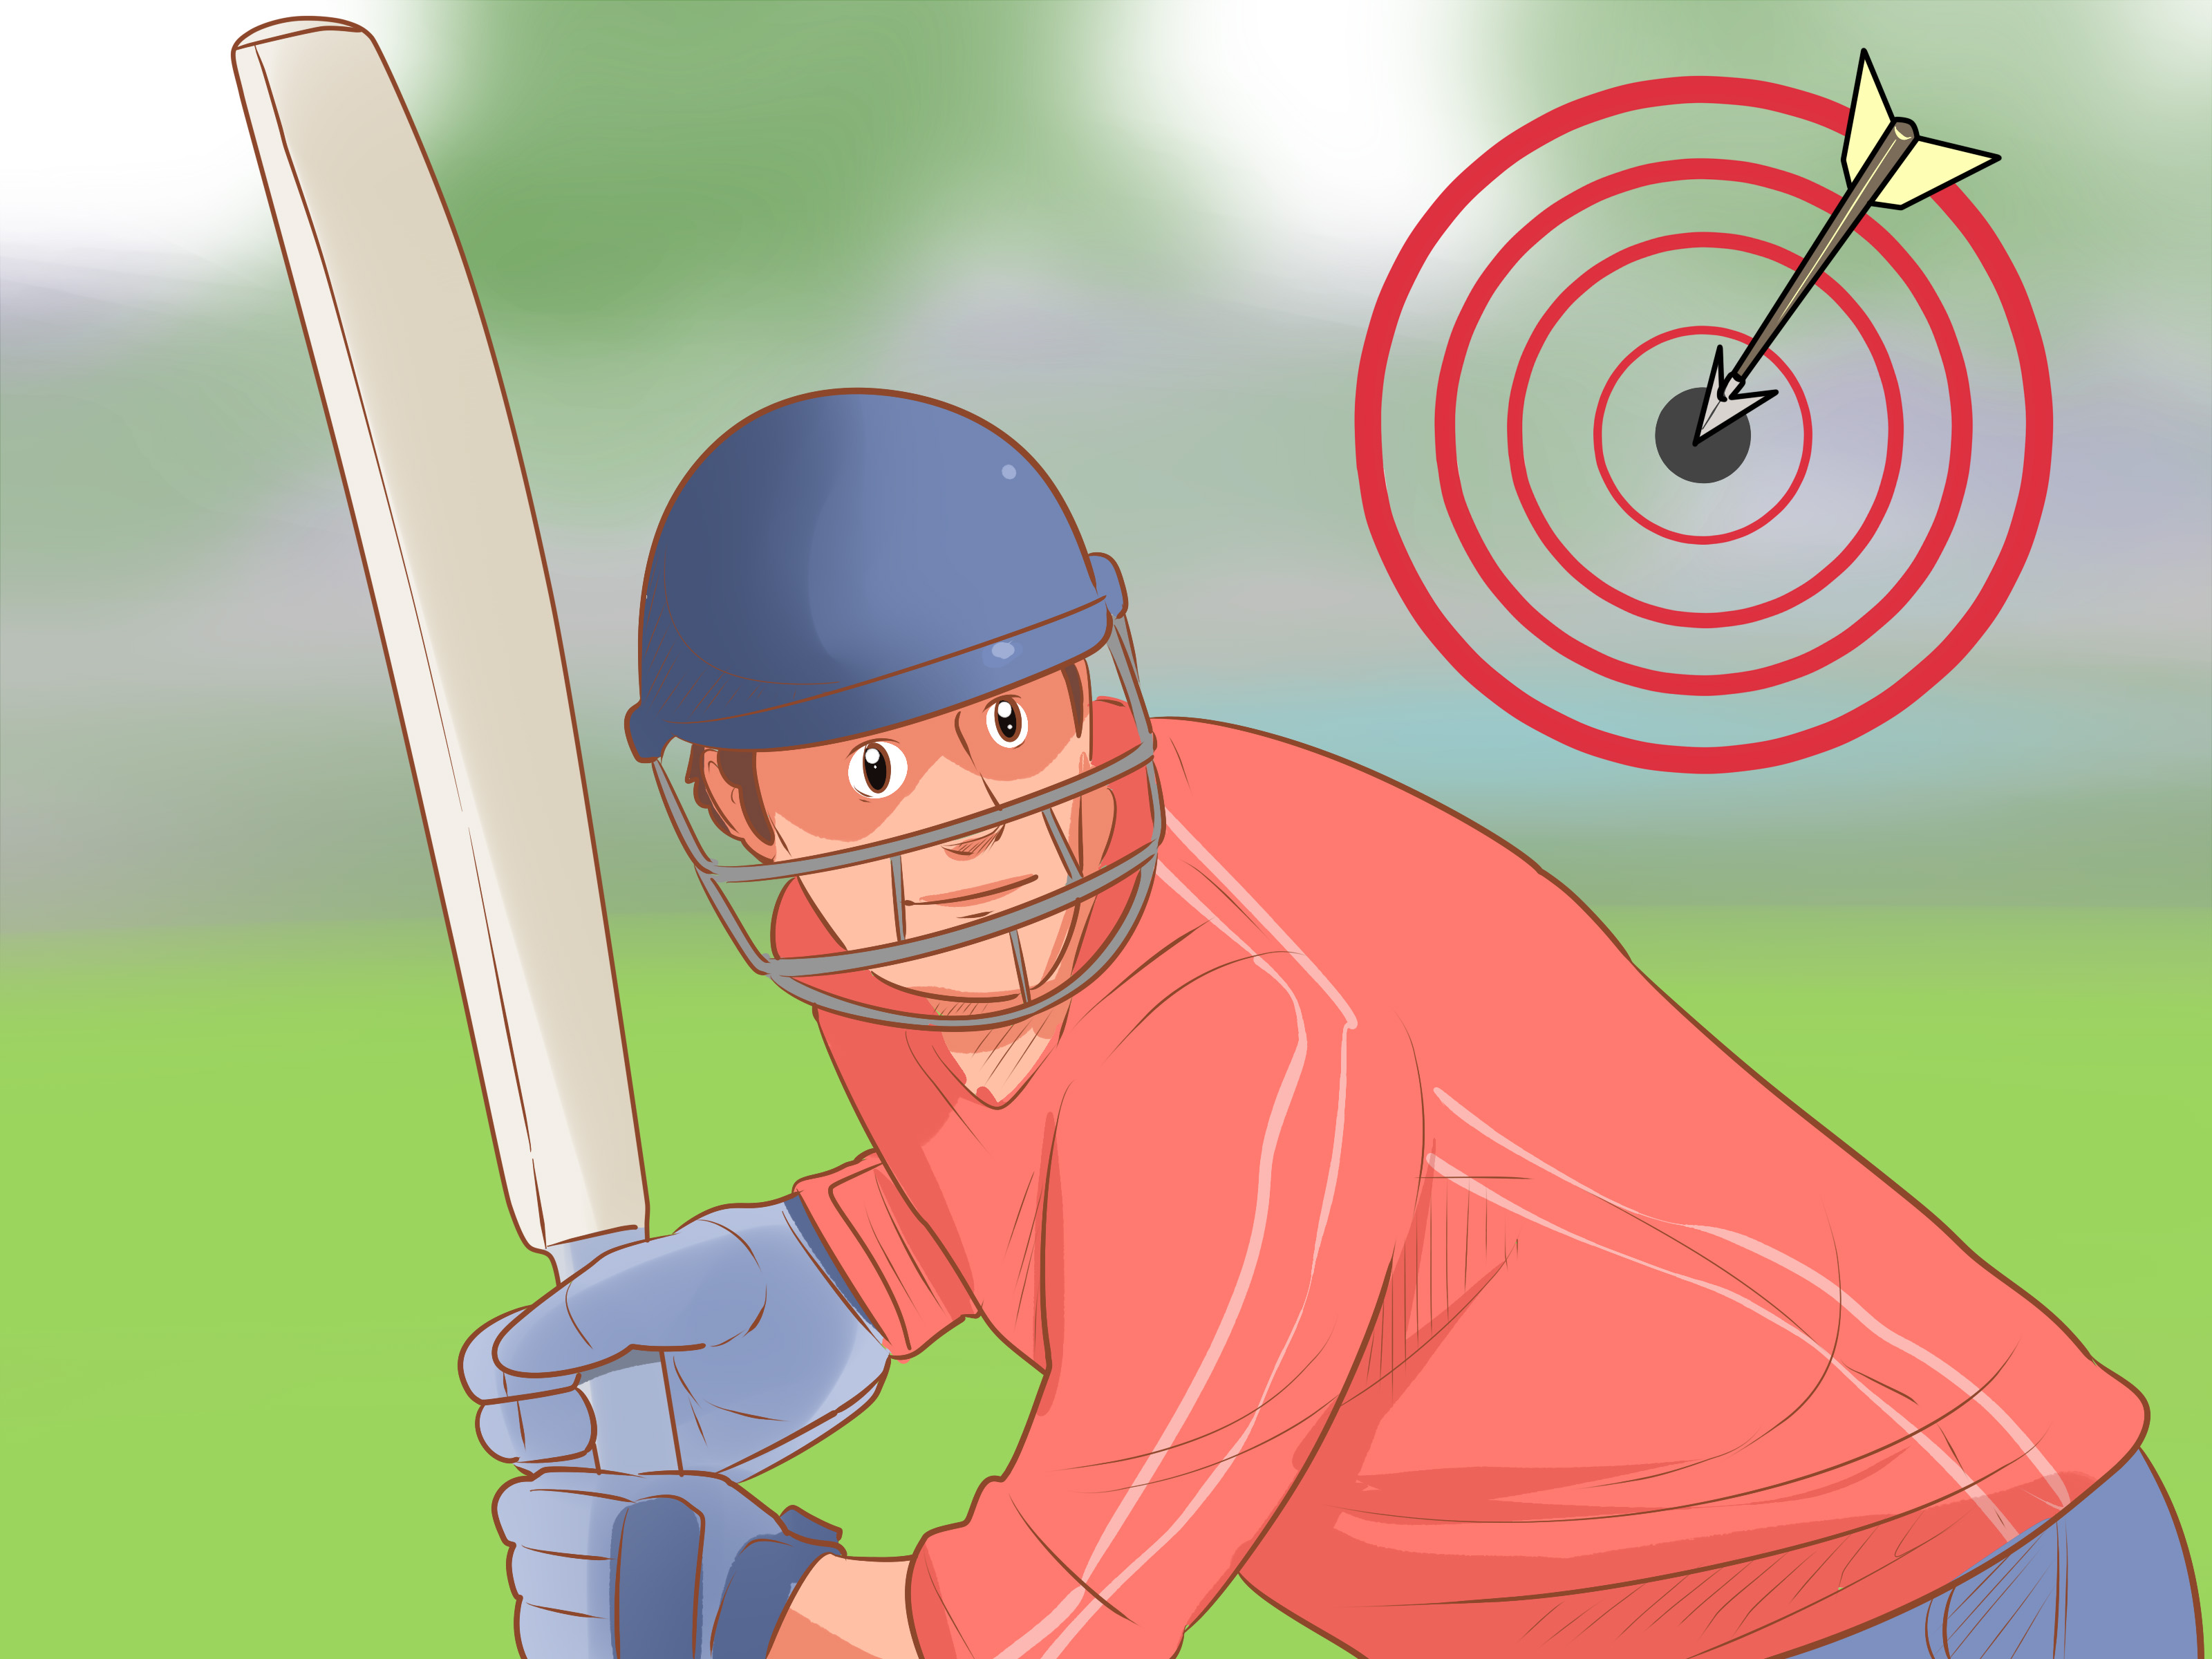 Tennis ball with legs and arms agressive cartoon clipart image free 2 Easy Ways to Improve Your Batting in Cricket - wikiHow image free